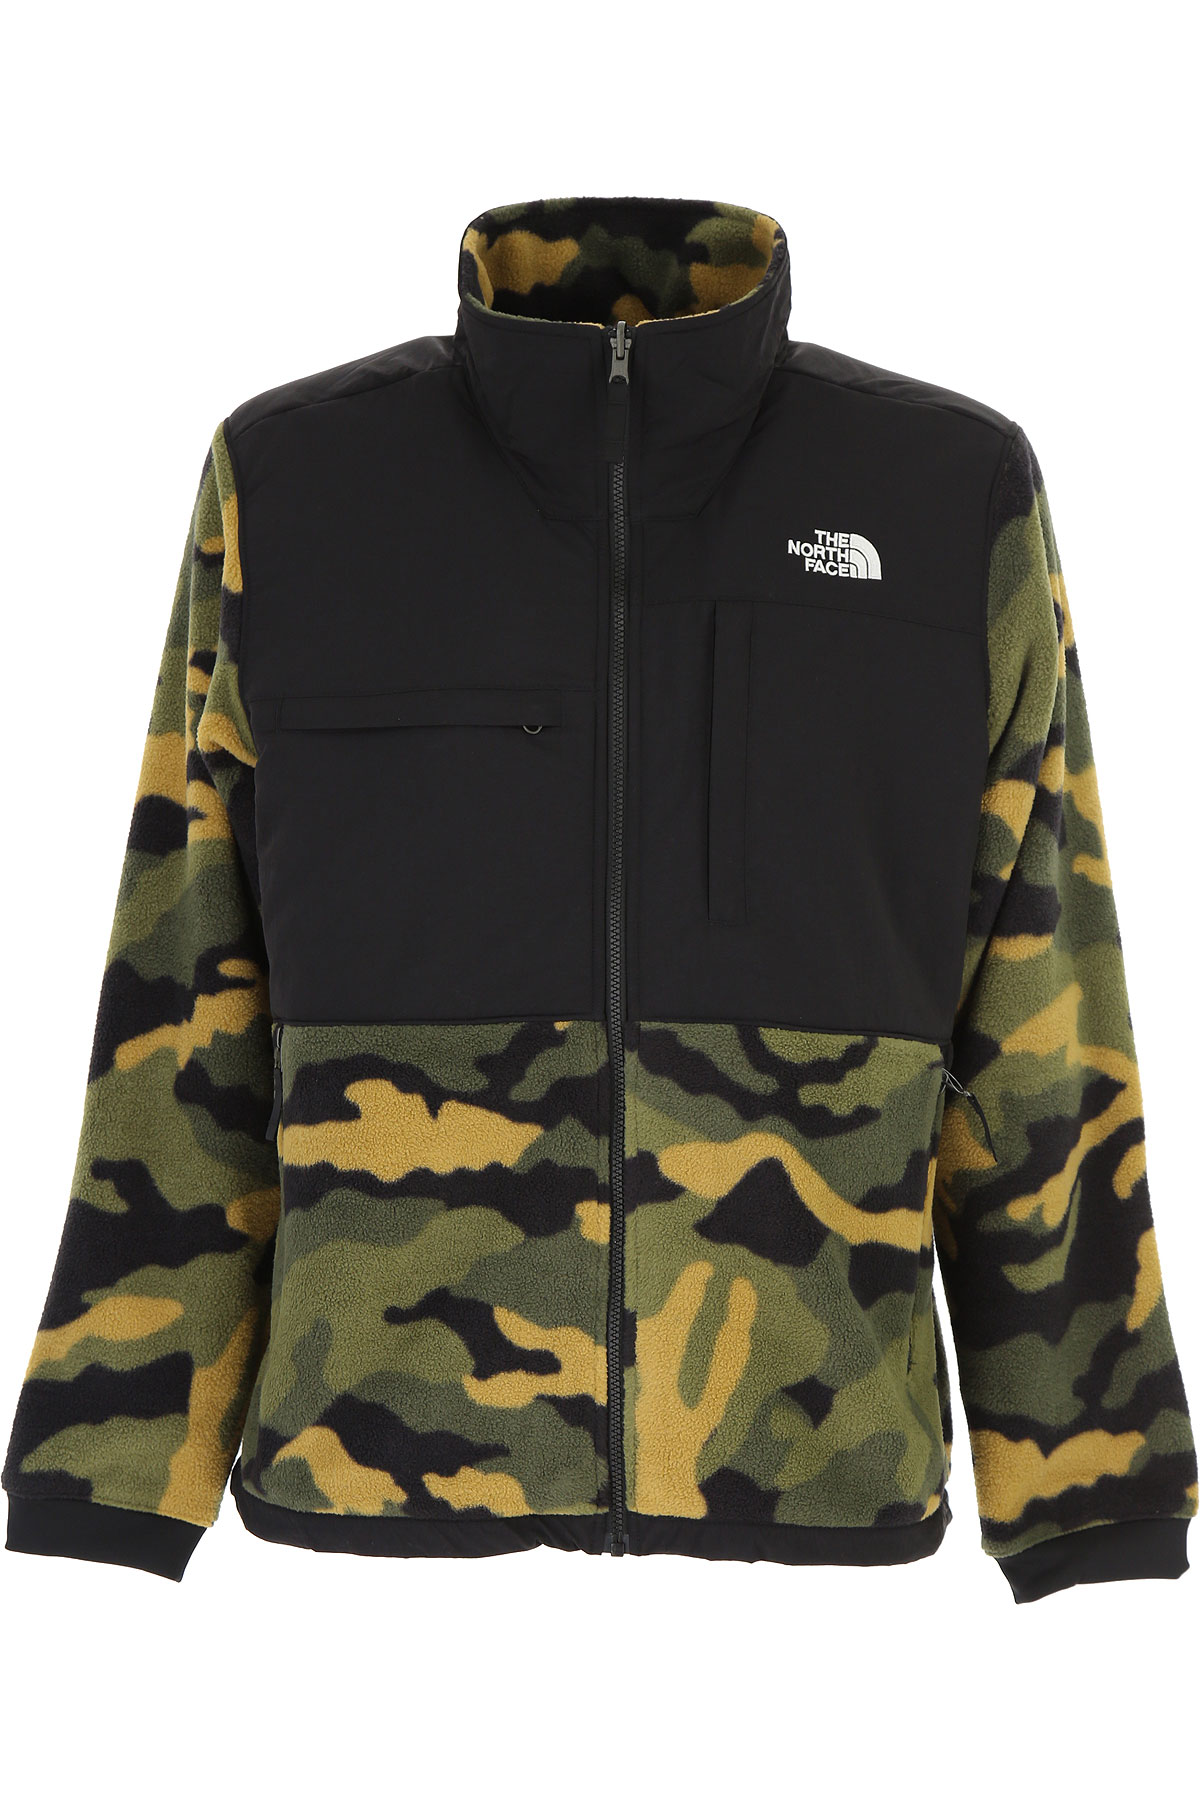 The North Face Sweatshirt for Men On Sale, Military Green, polyestere, 2019, L M S